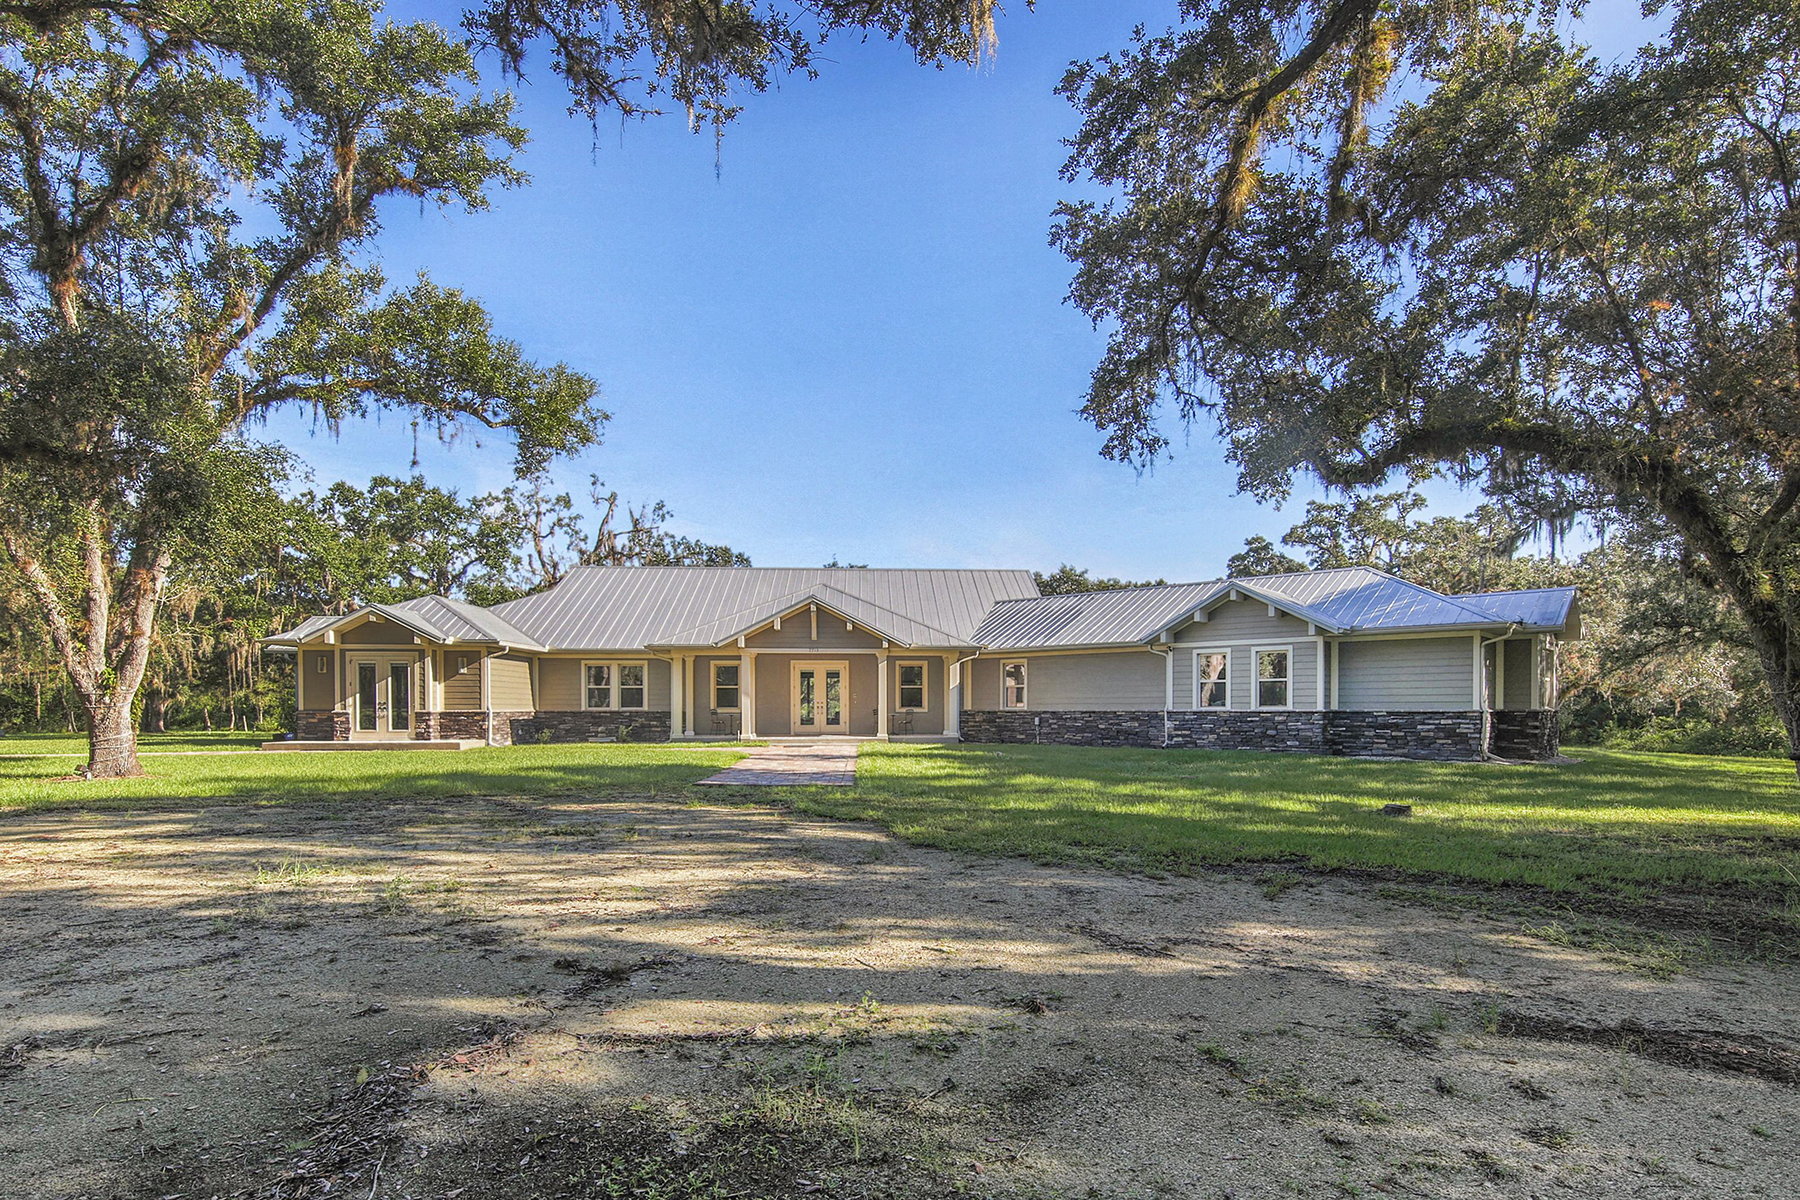 Single Family Home for Sale at ARCADIA 7713 SW Vineyard Terr Arcadia, Florida, 34269 United States